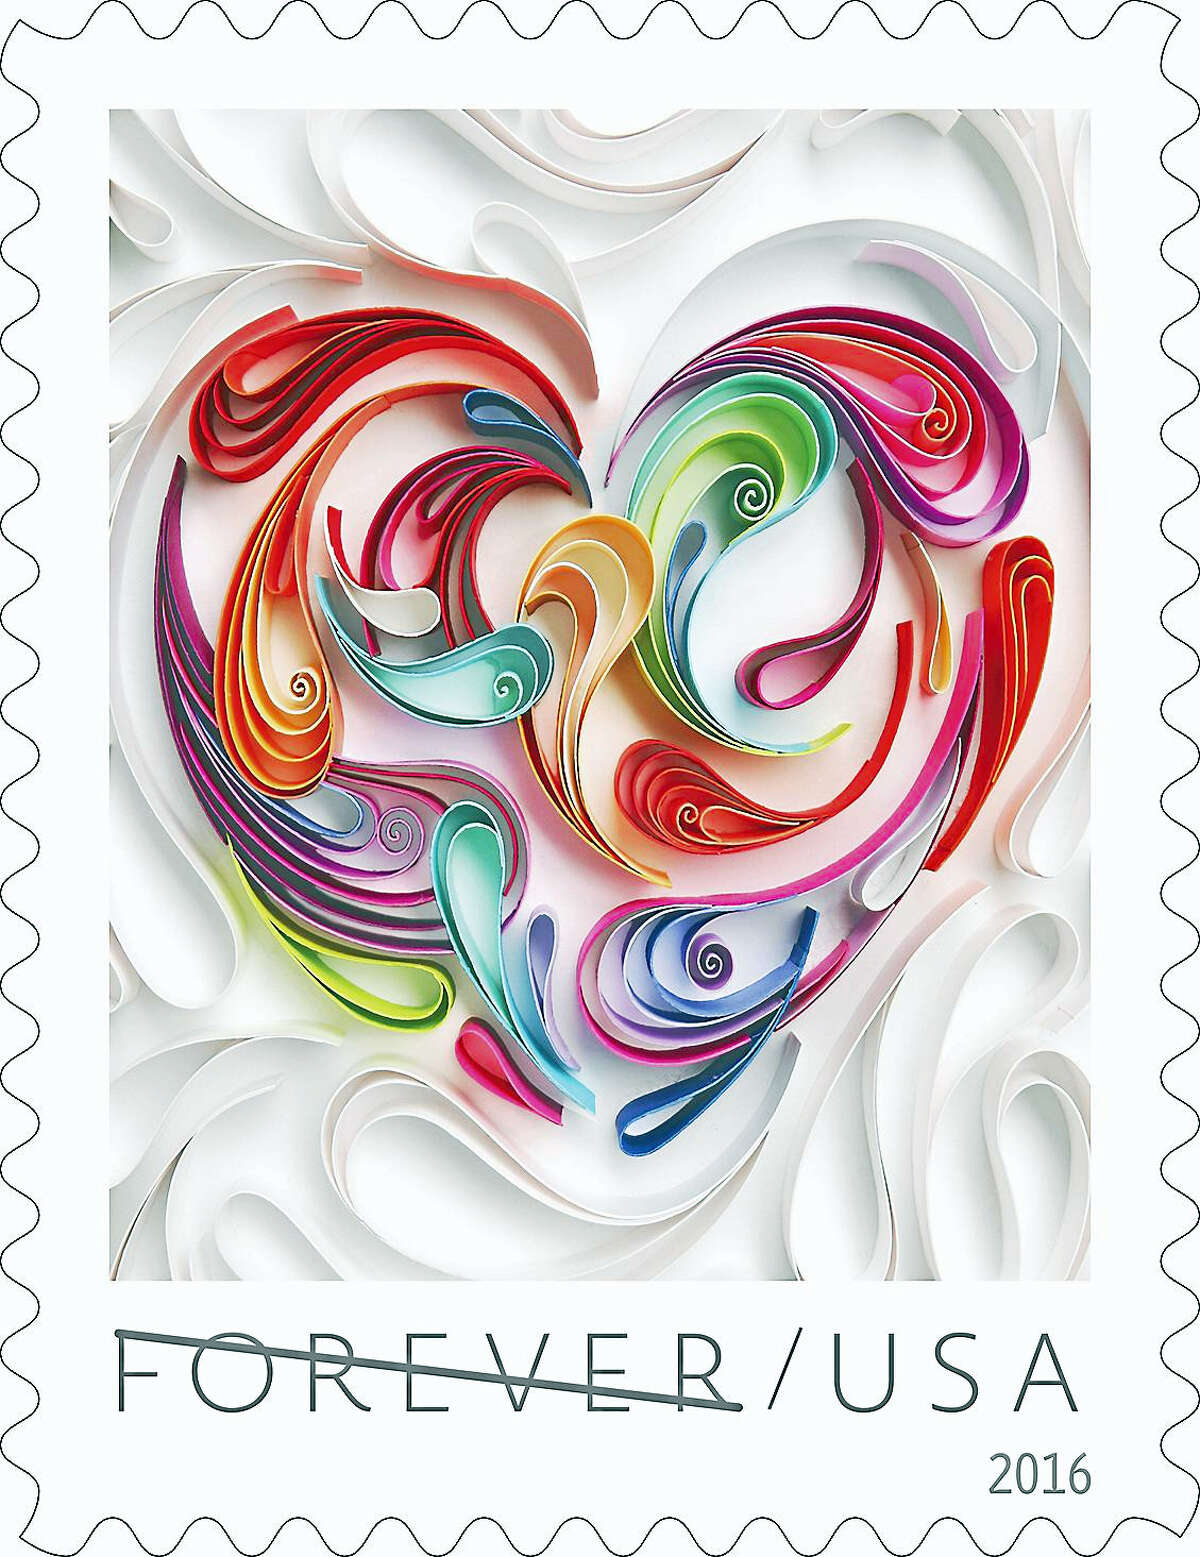 """The 2016 Love stamp — a Quilled Paper Heart Forever stamp. The line through """"Forever"""" is no reflection on the love theme, said a postal spokesman; it's to prevent counterfeiting in this display only."""